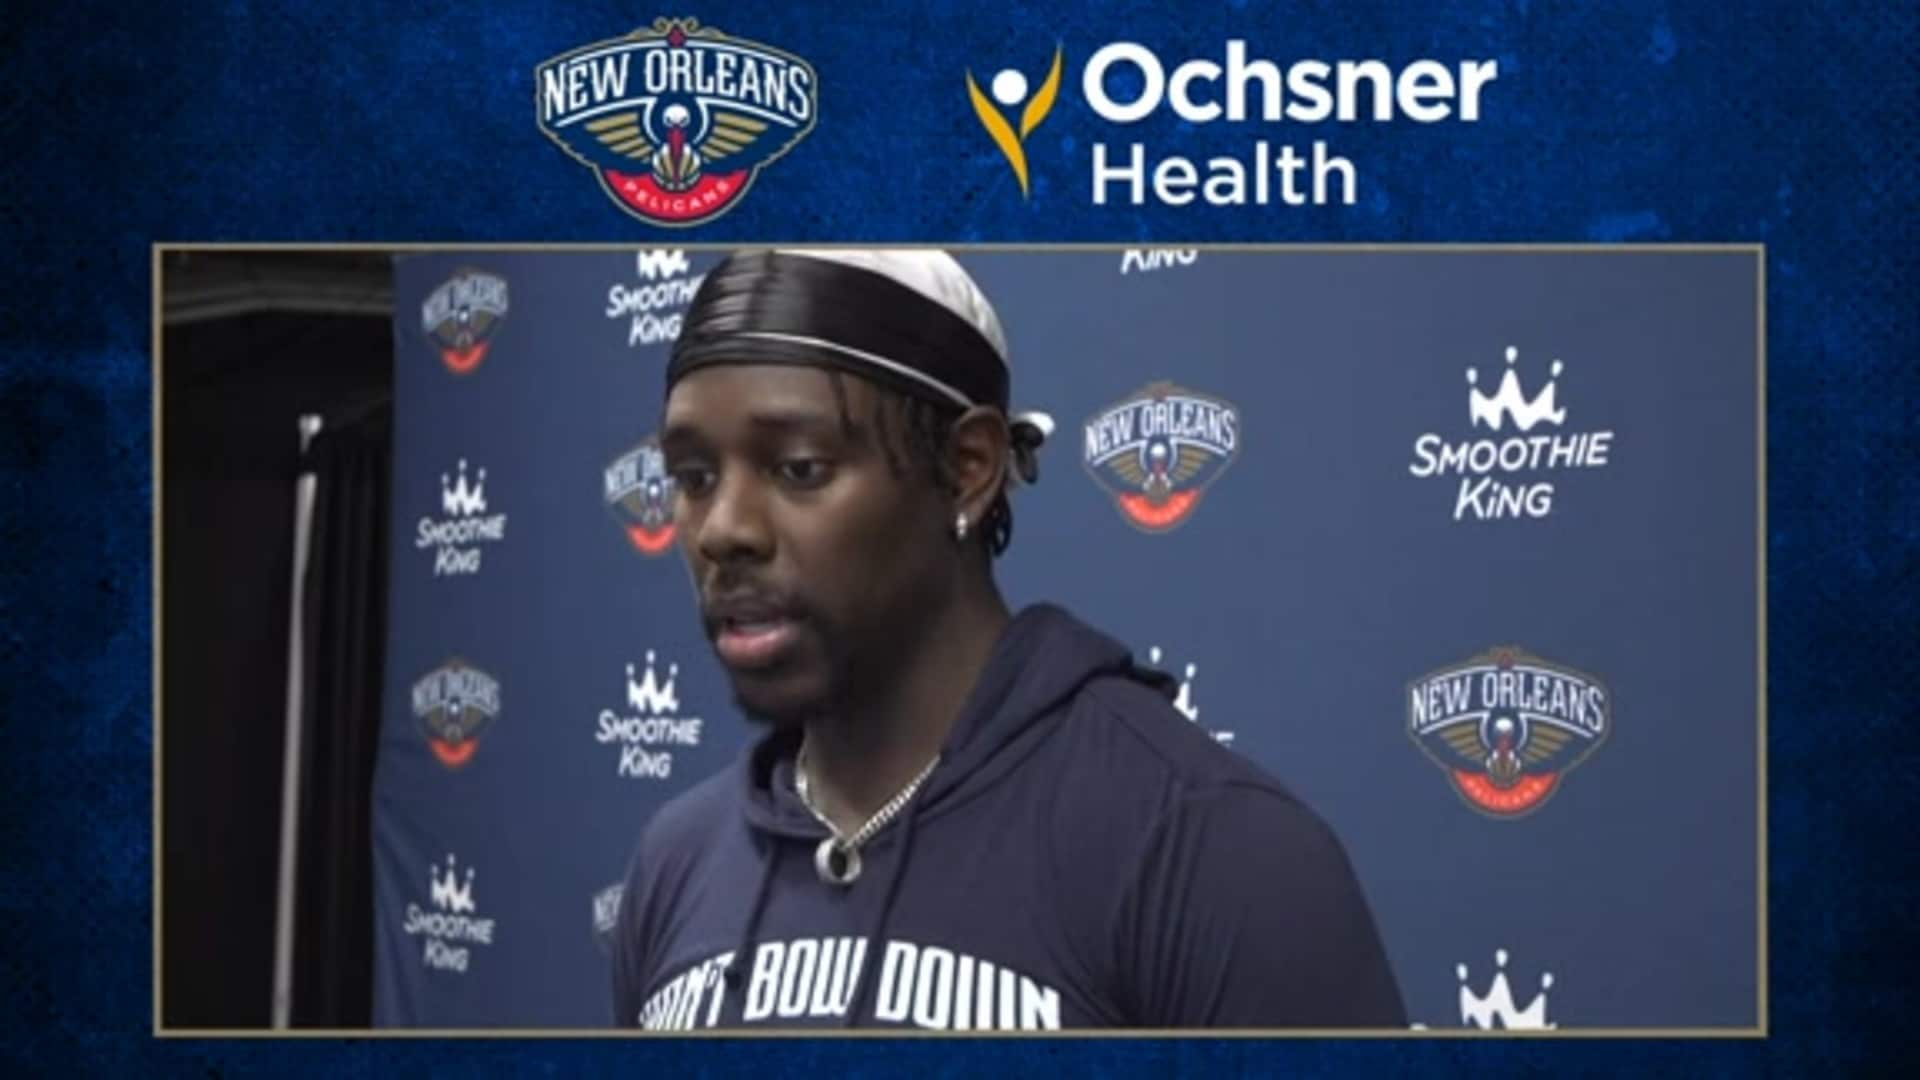 Pelicans Practice: Jrue Holiday interview after first practice in Orlando